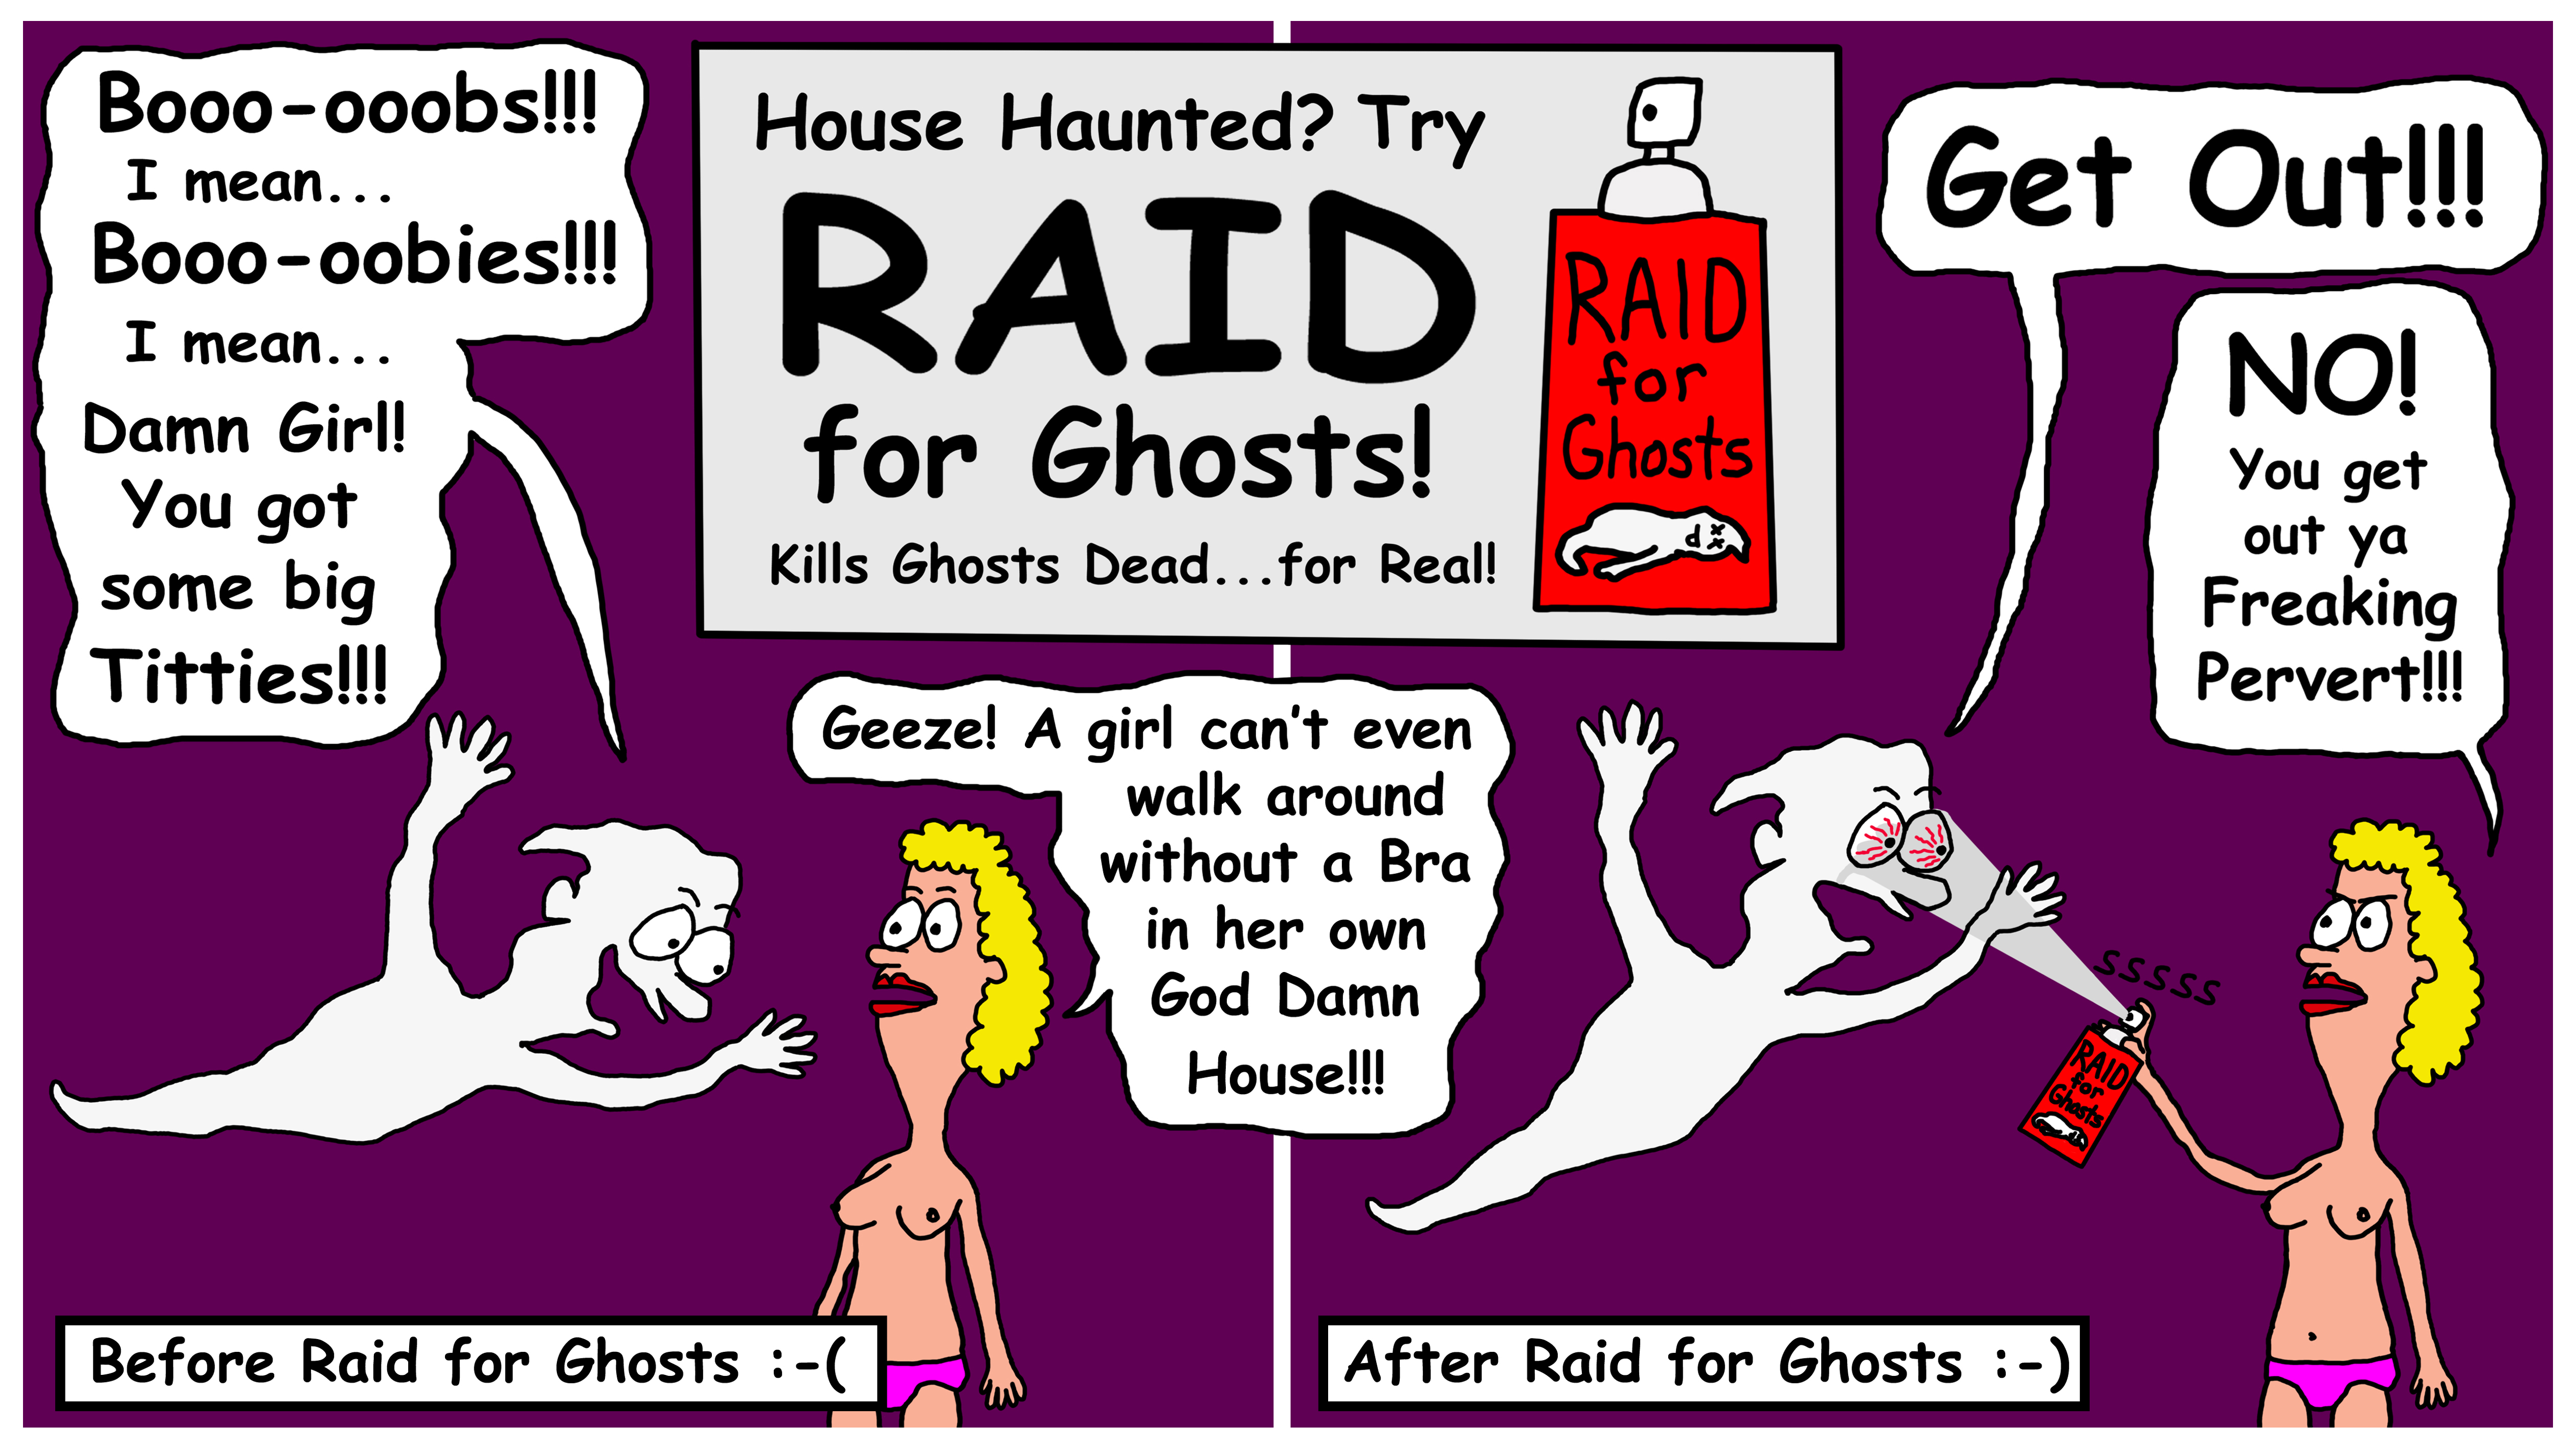 Raid for Ghosts.